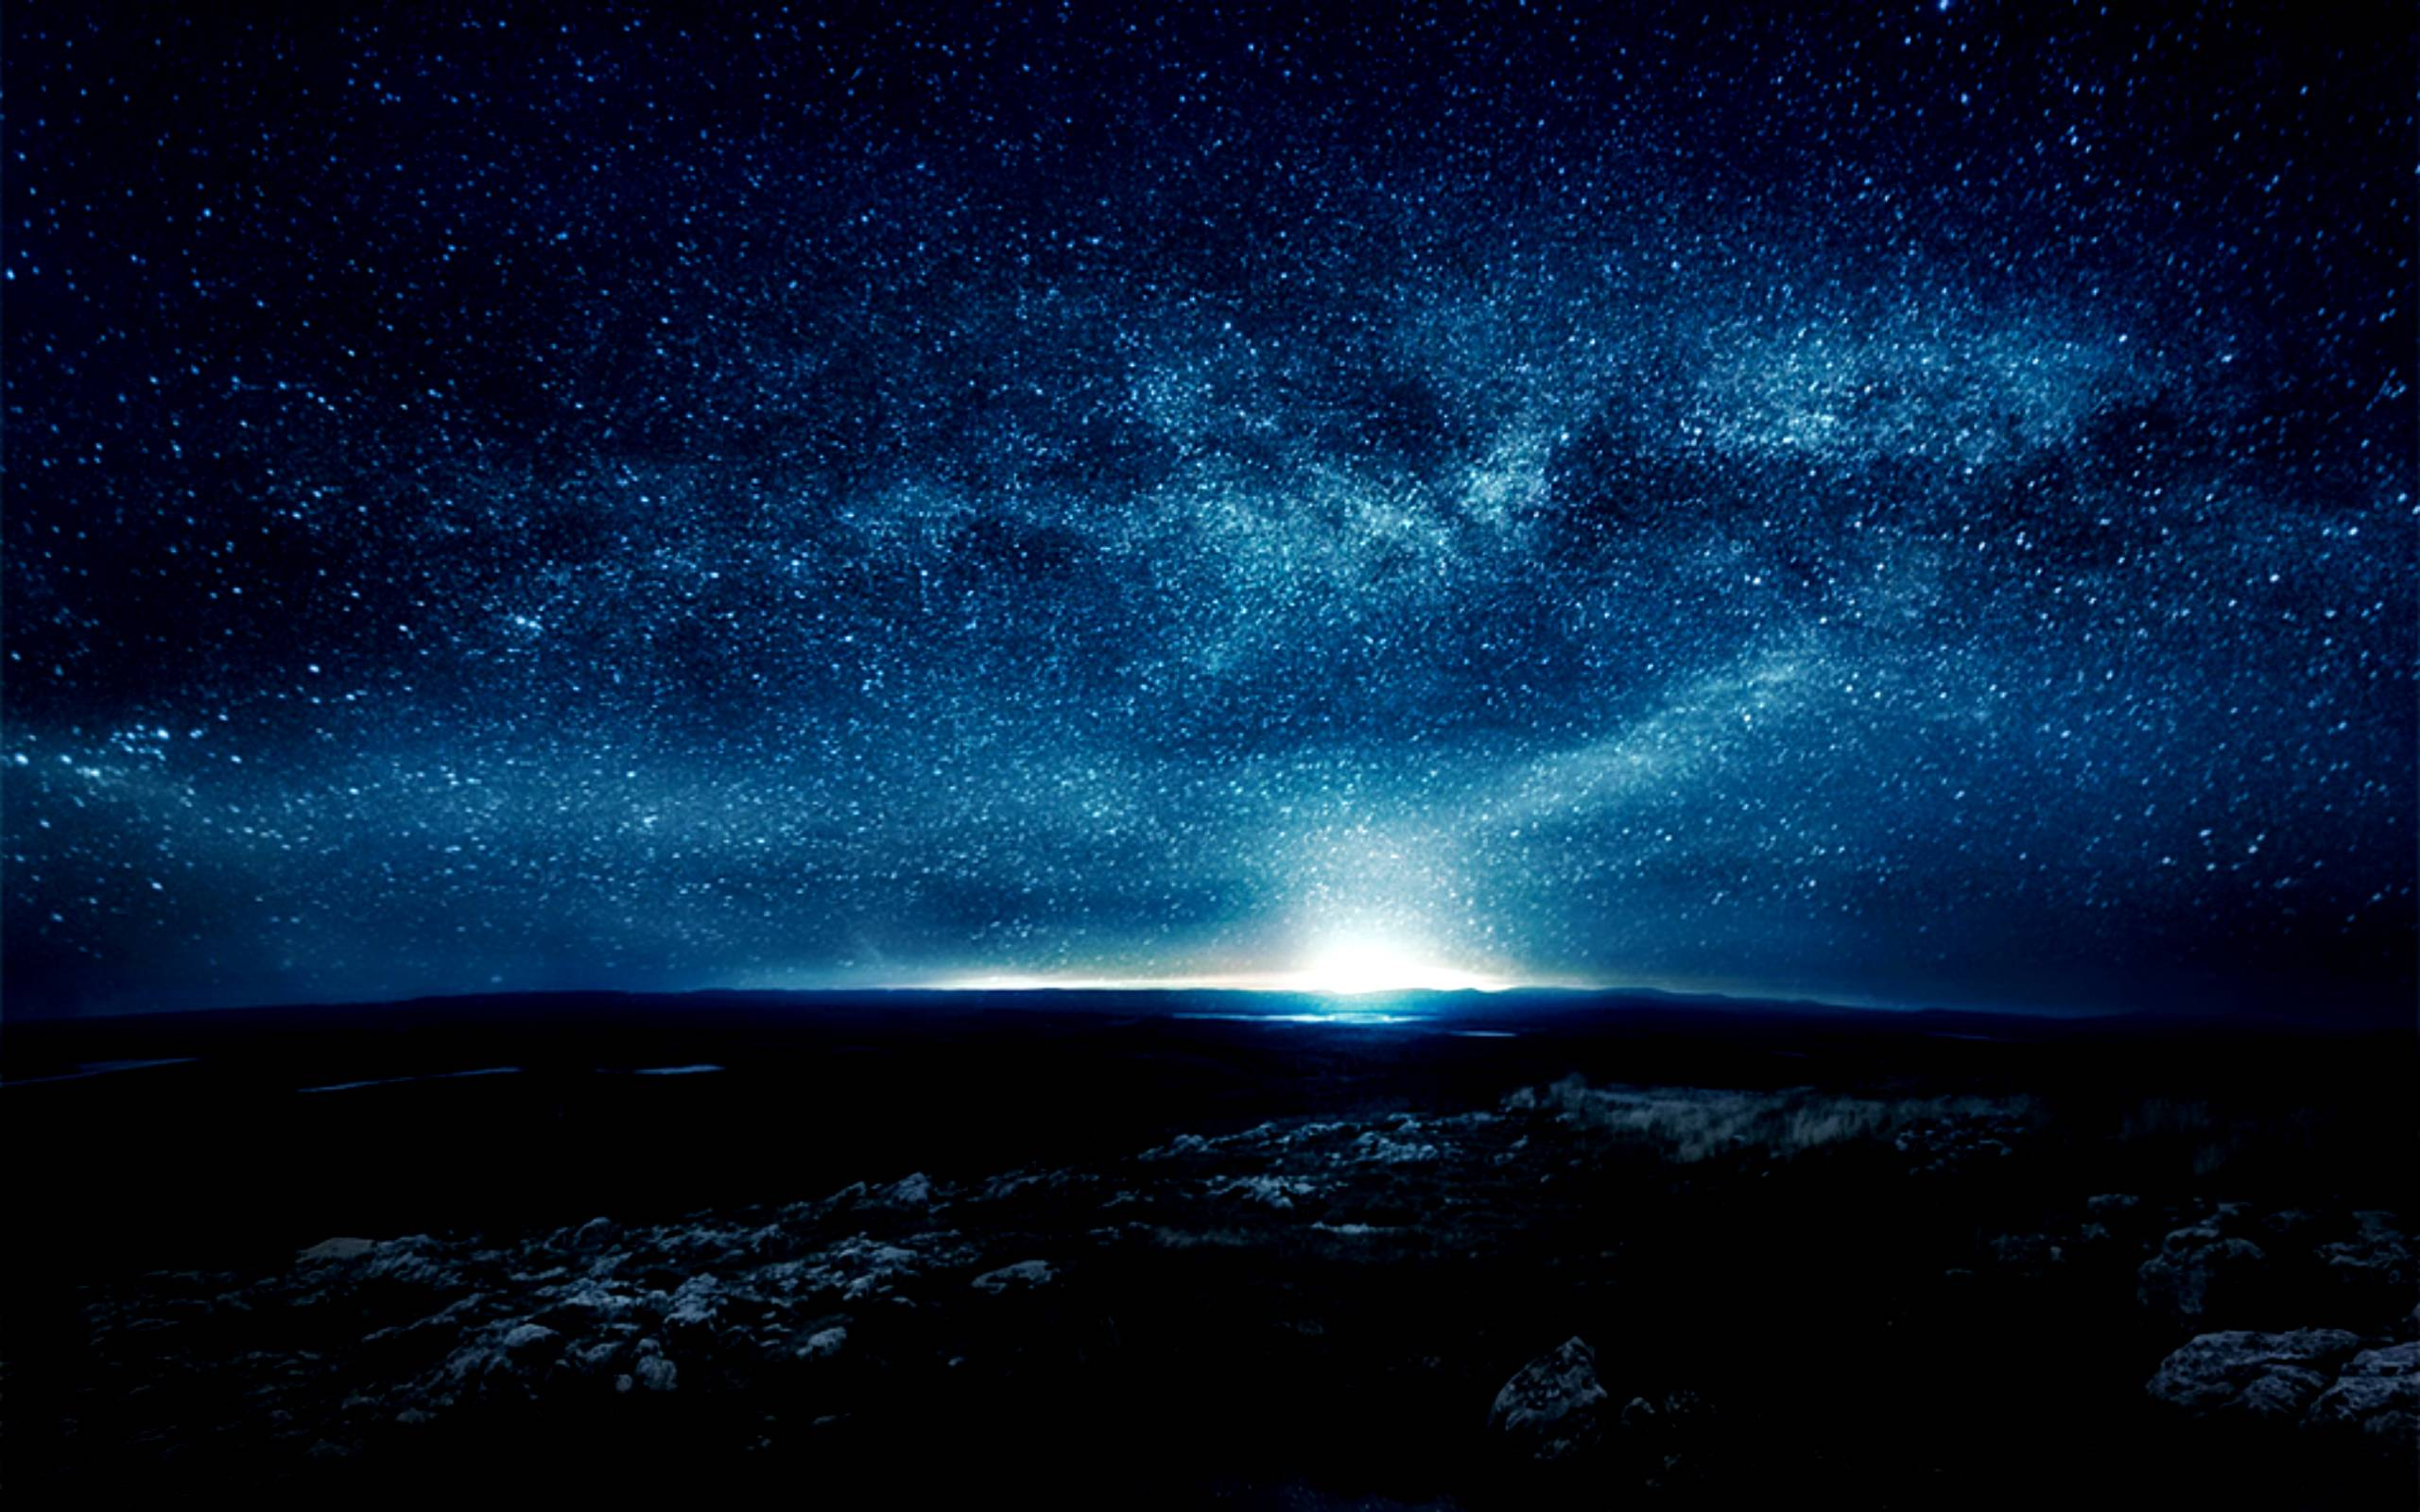 blue night sky background - photo #38